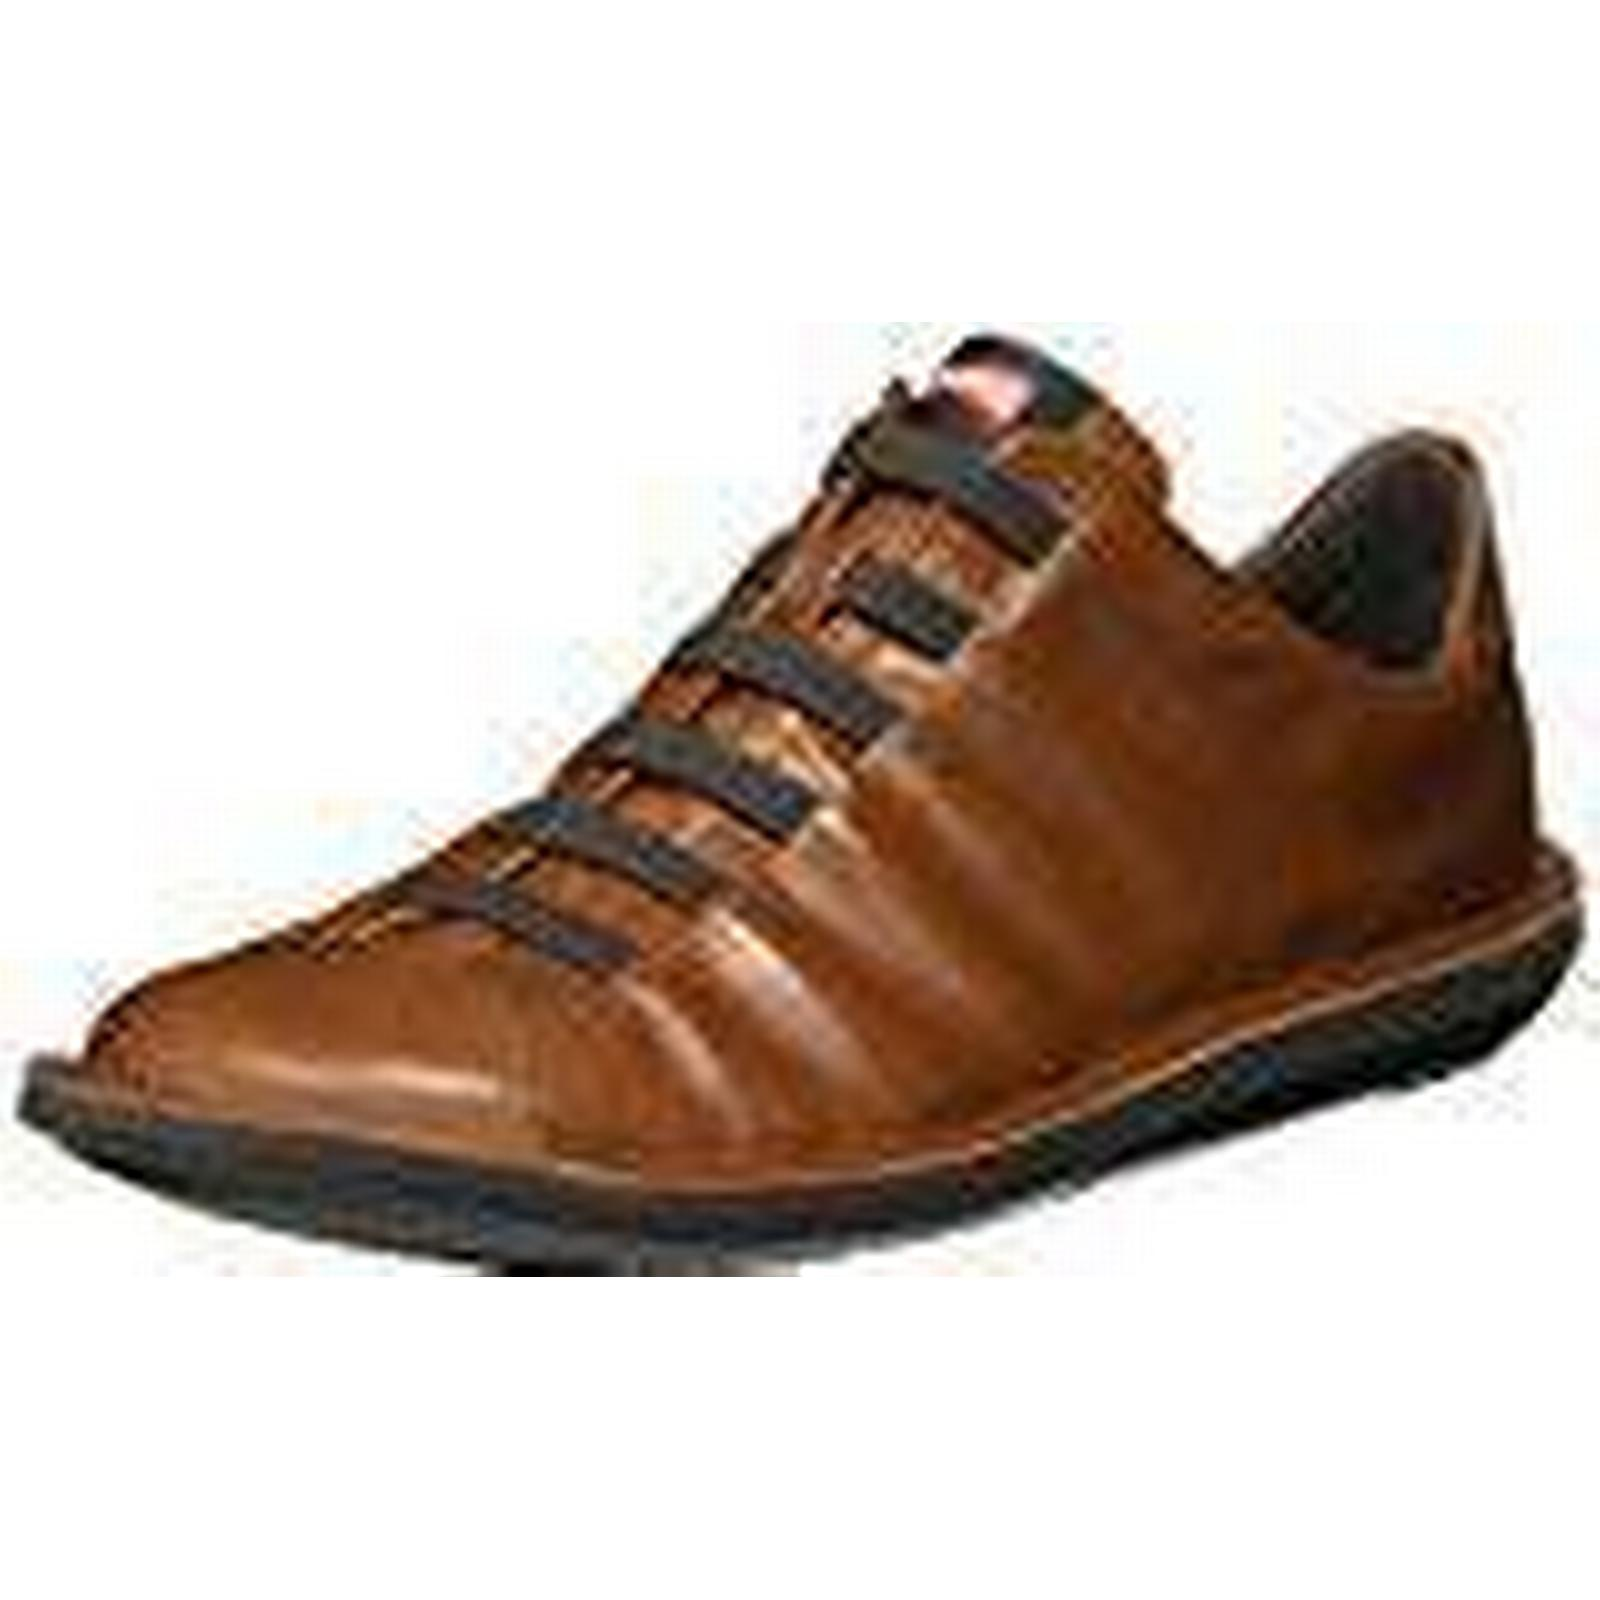 Camper Men's Beetle 18751 Sneaker, EU) Brown, 10 UK (44 EU) Sneaker, 96dfac